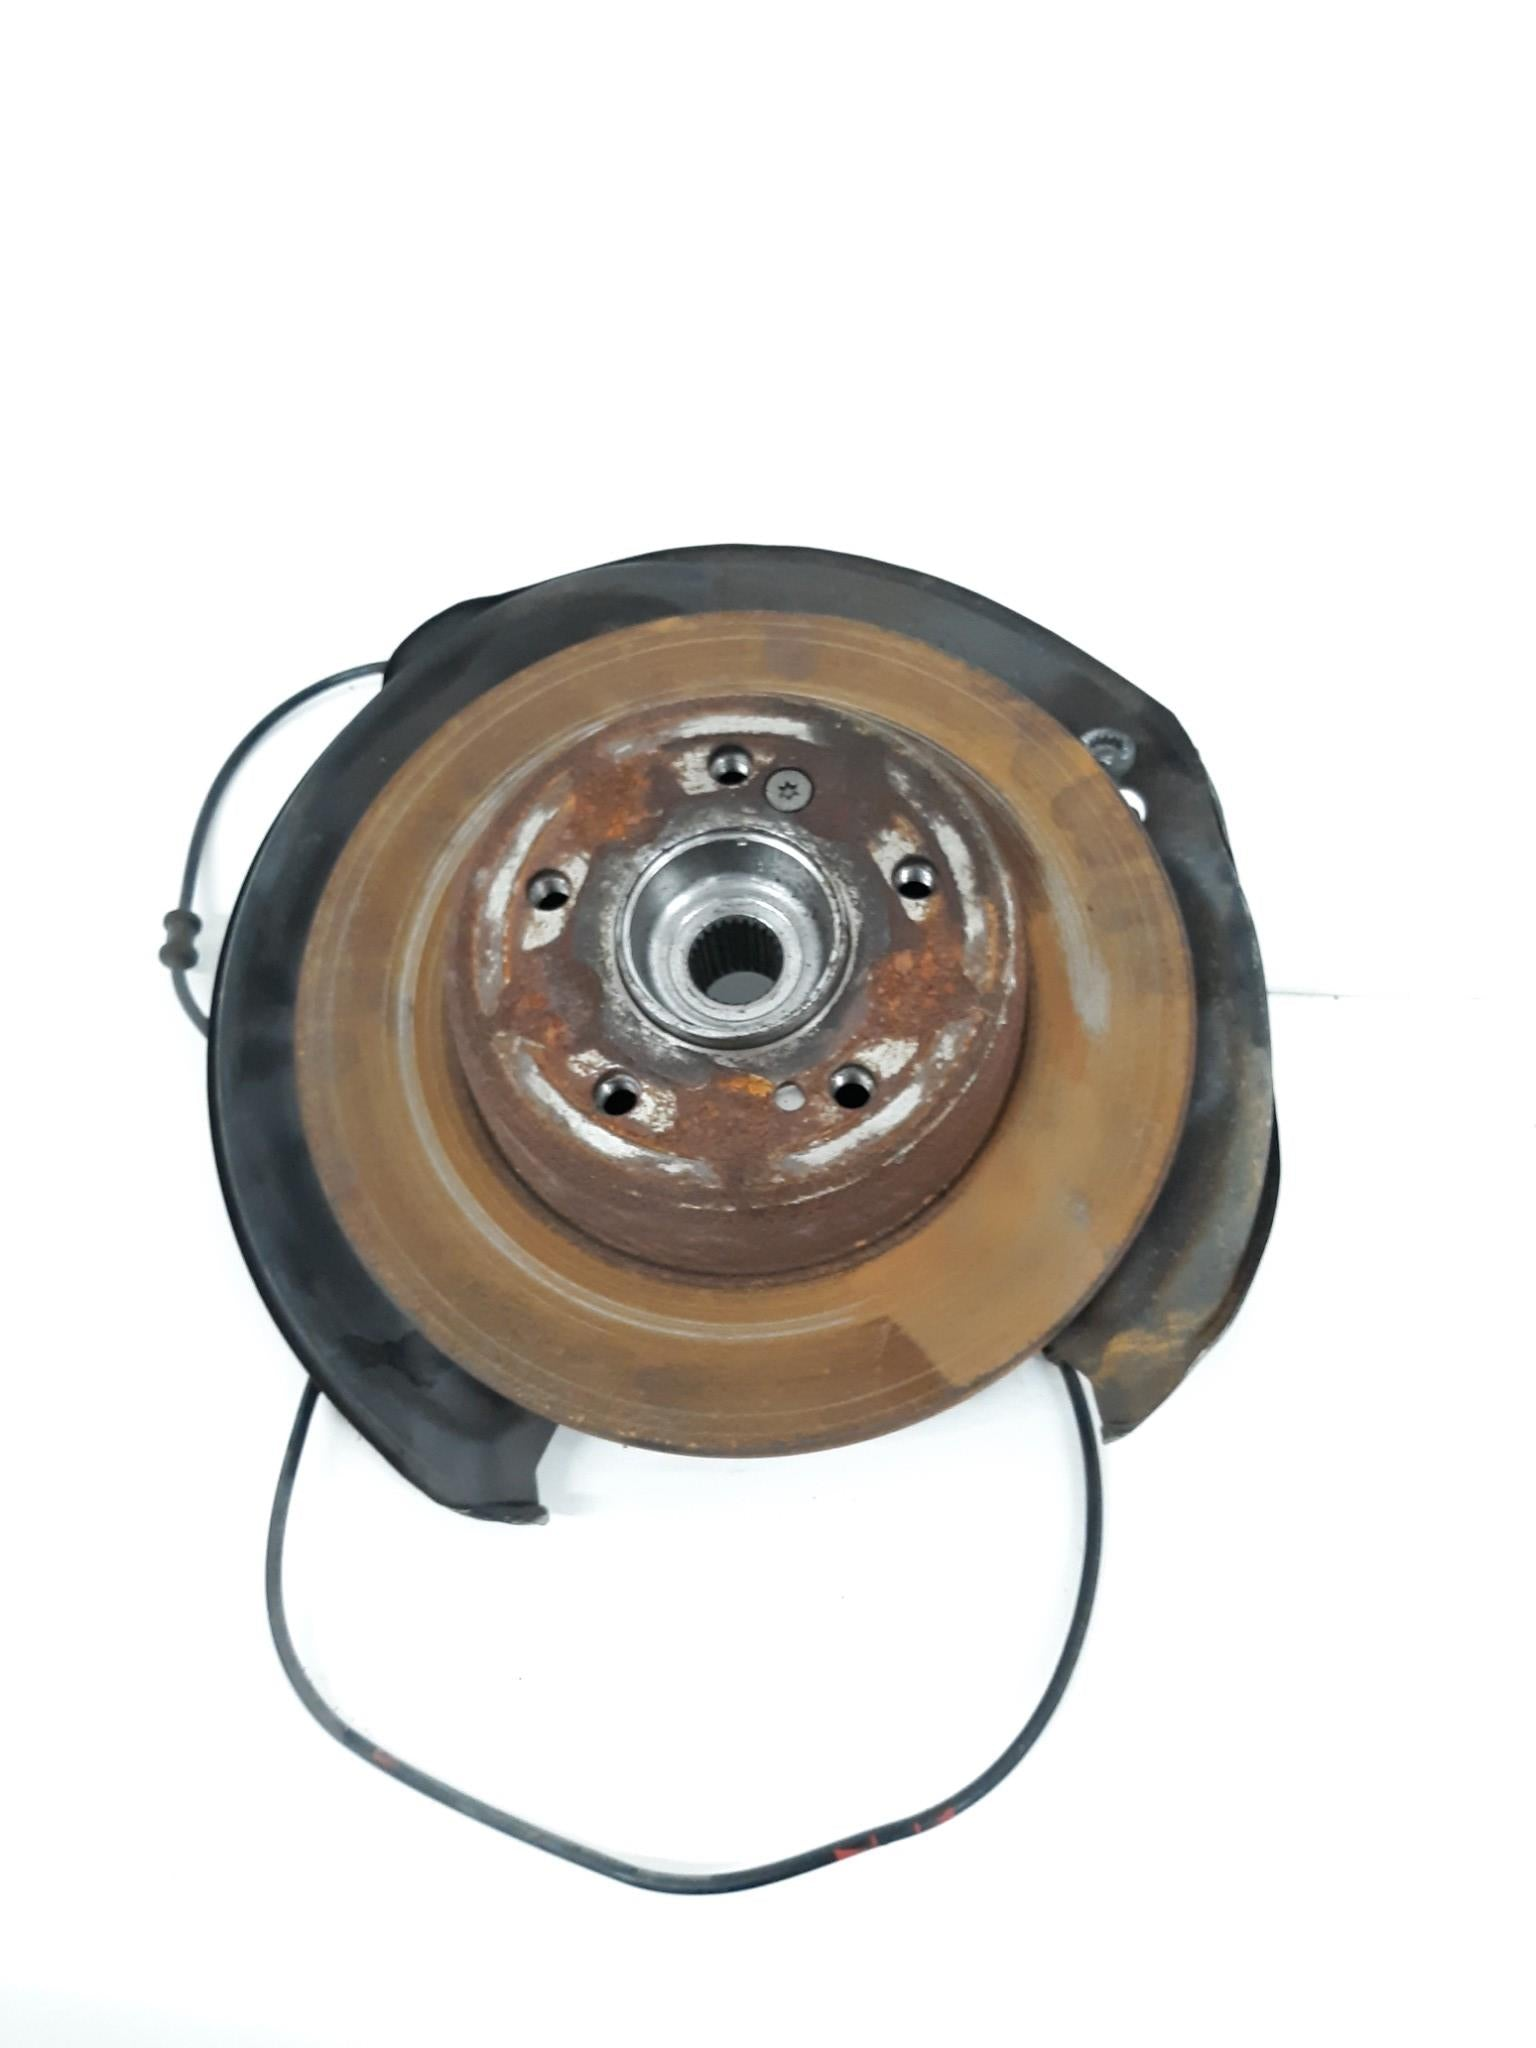 2001 - 2007 MERCEDES W203 C230 C240 RH REAR RIGHT SPINDLE HUB KNUCKLE OEM - Click Receive Auto Parts